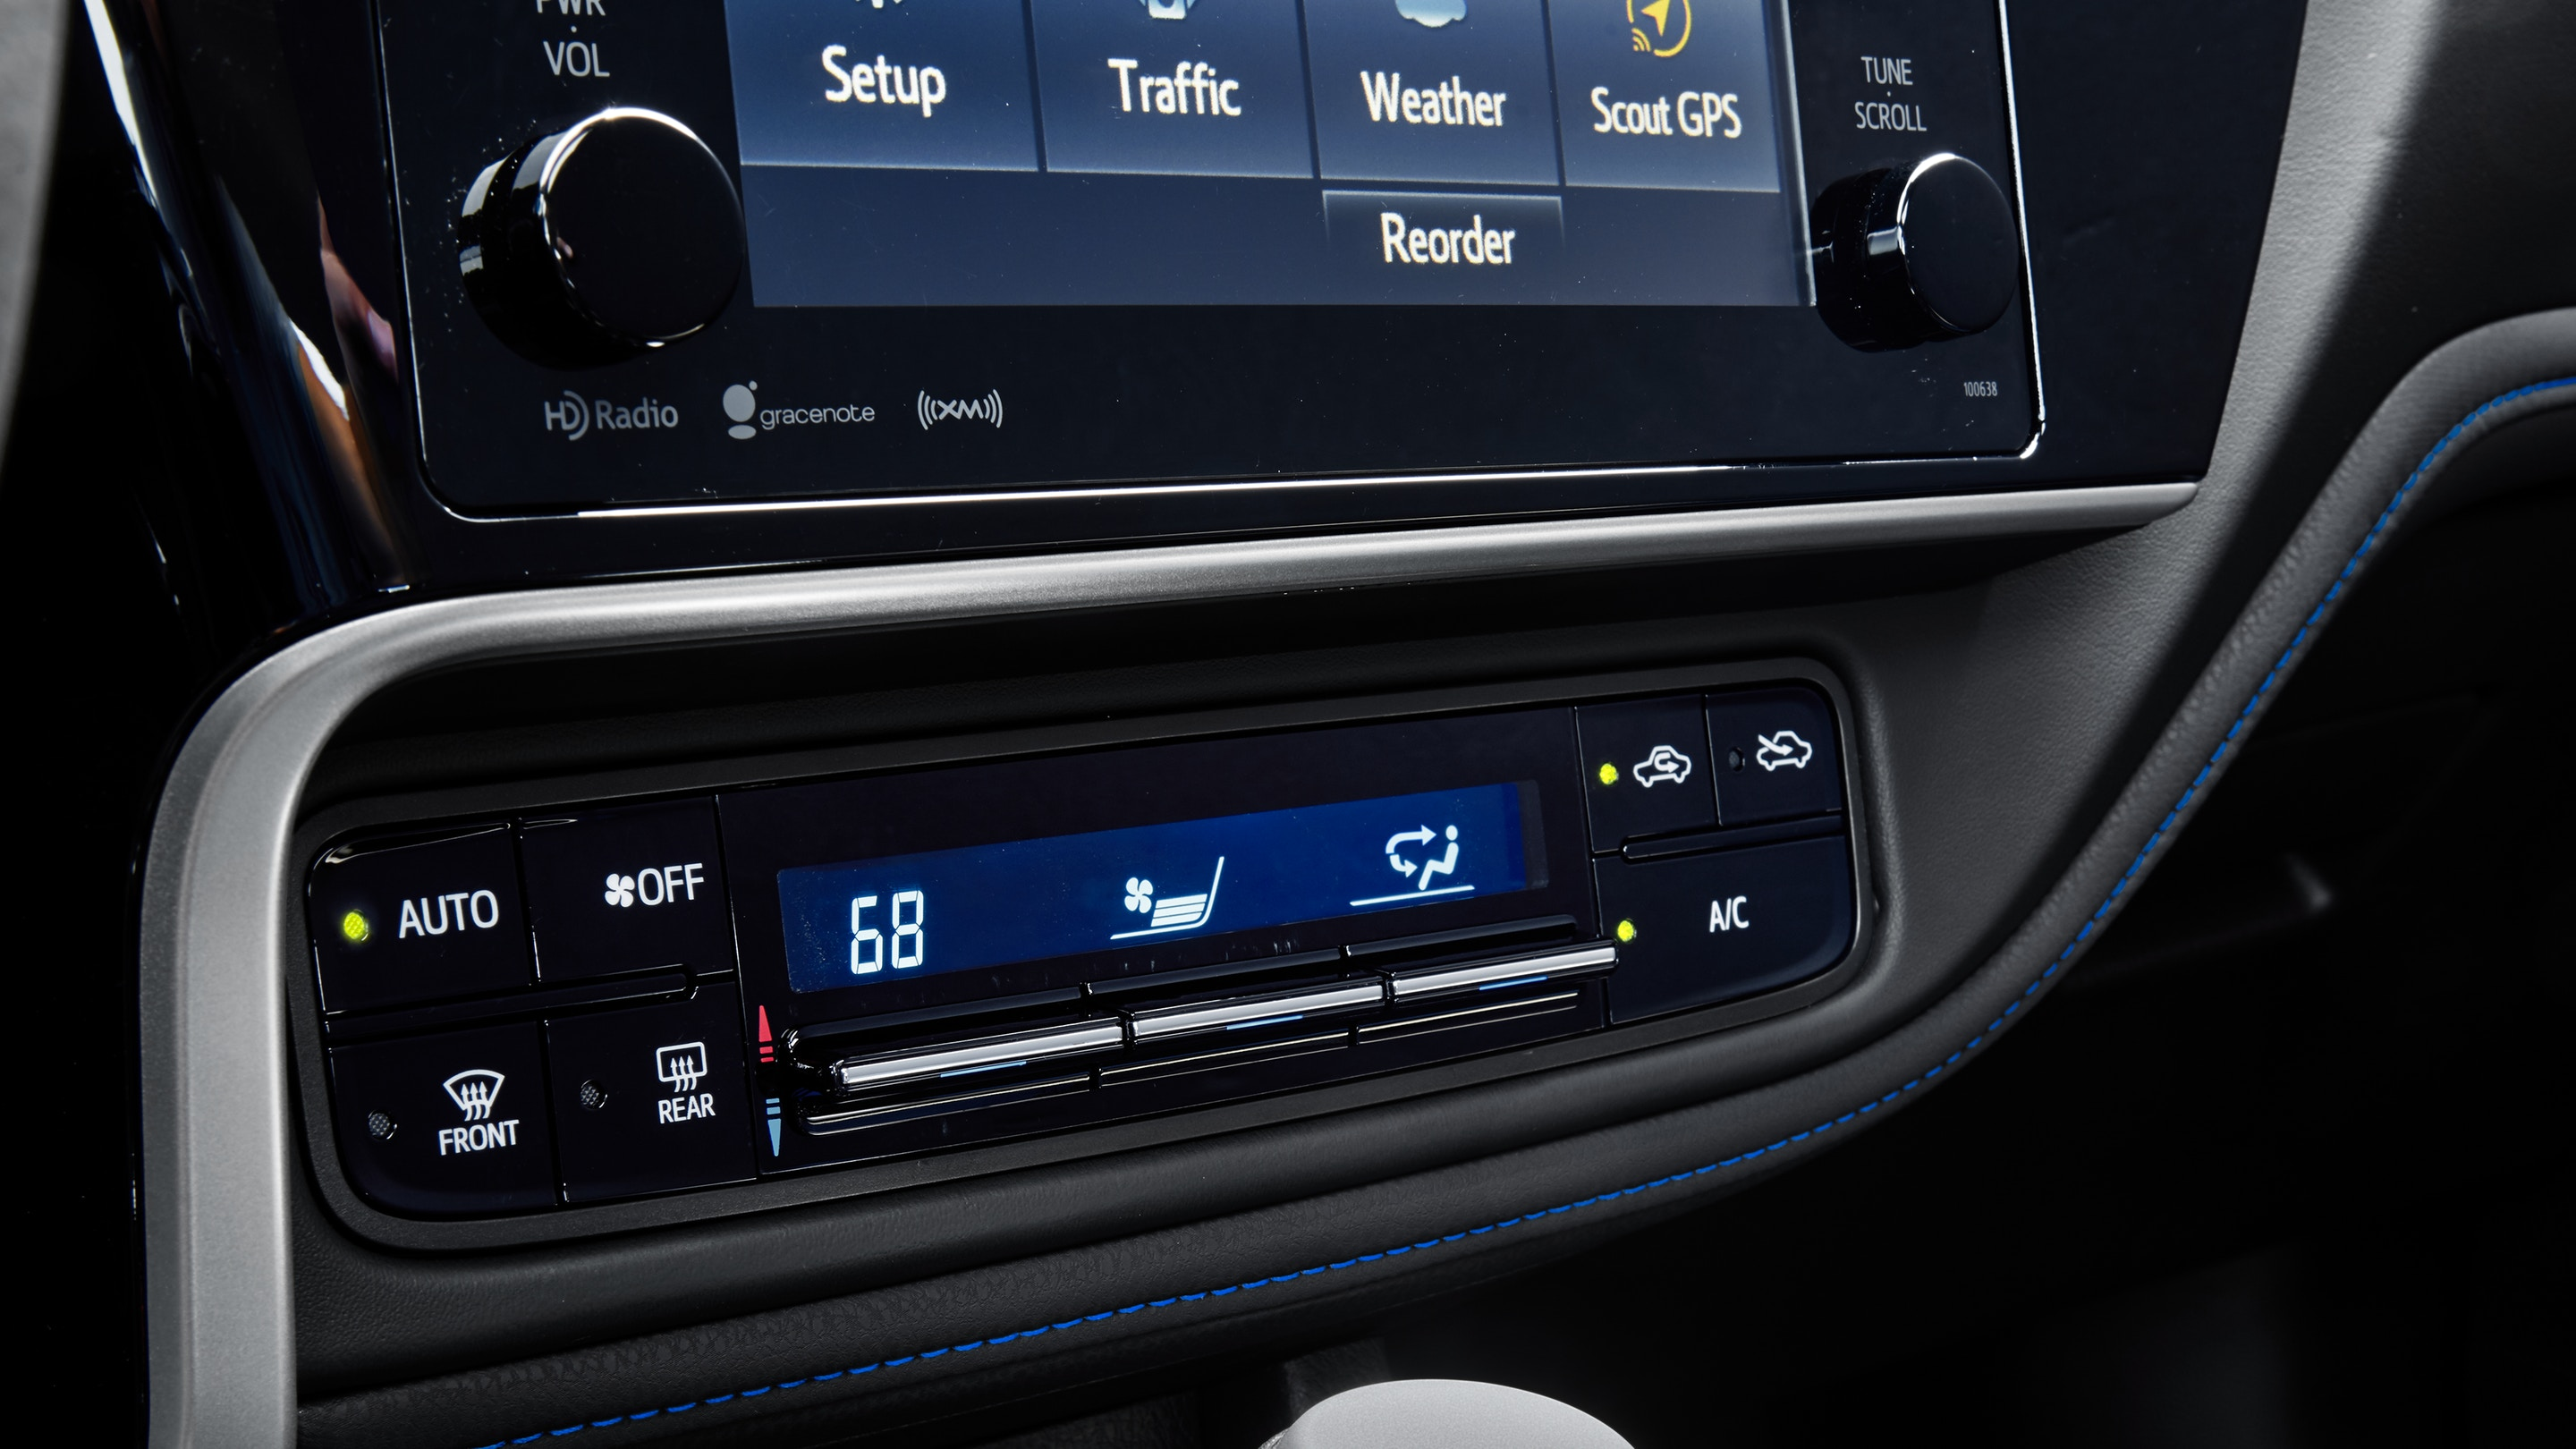 2019 Toyota Corolla Dashboard Features